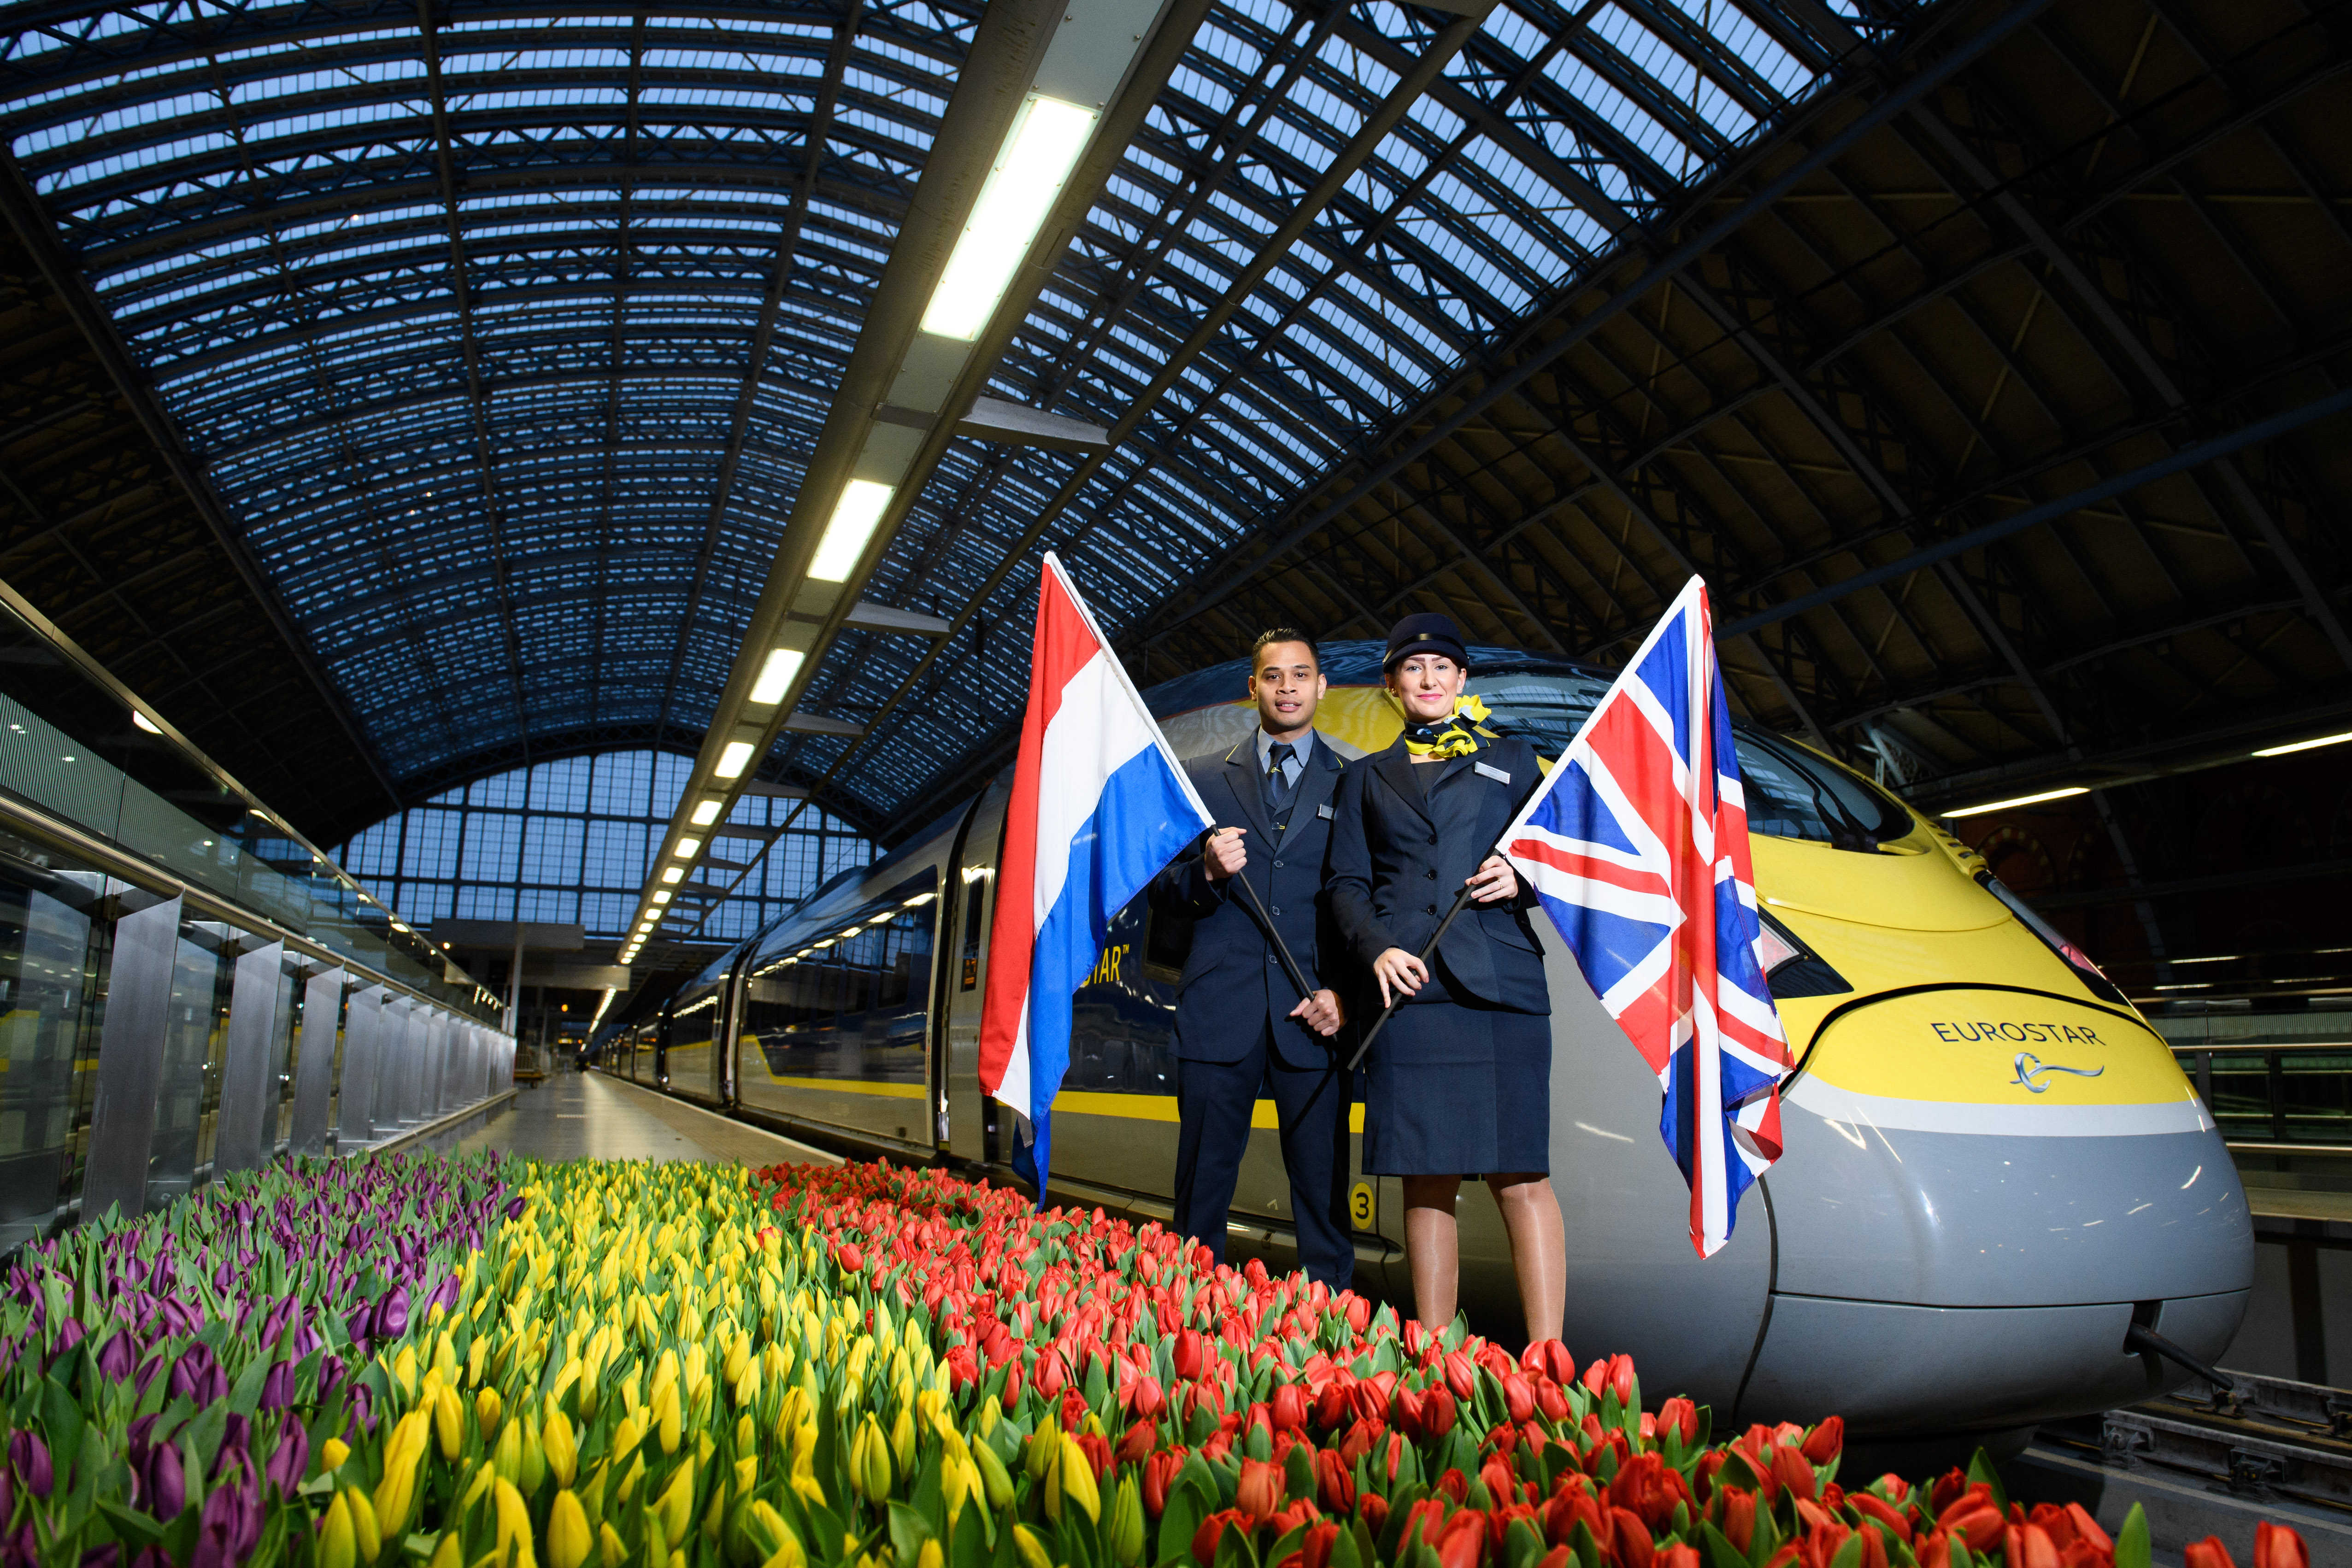 Eurostar staff stand next to a train as the first service set off from St Pancras